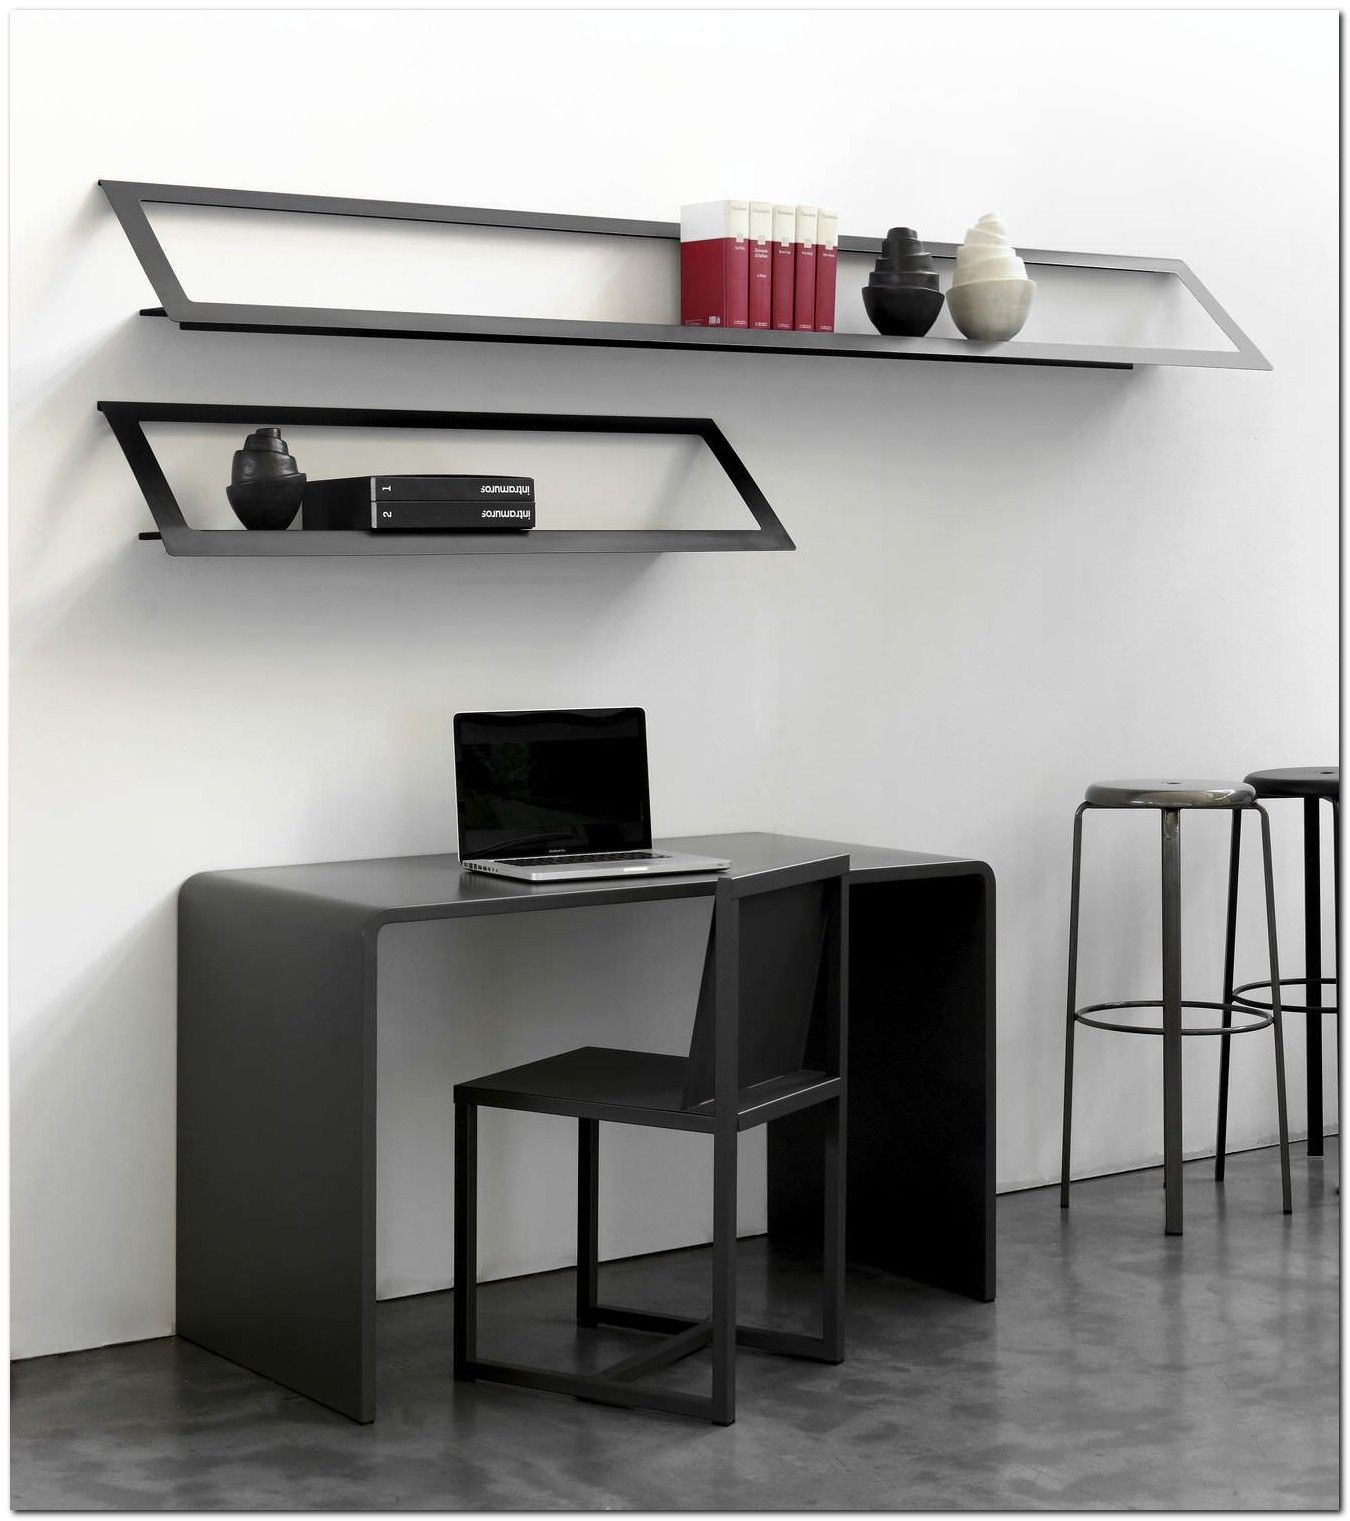 100 Modern Wall Mounted Desk Ideas The Urban Interior Shelves Wall Mounted Desk Wall Shelves